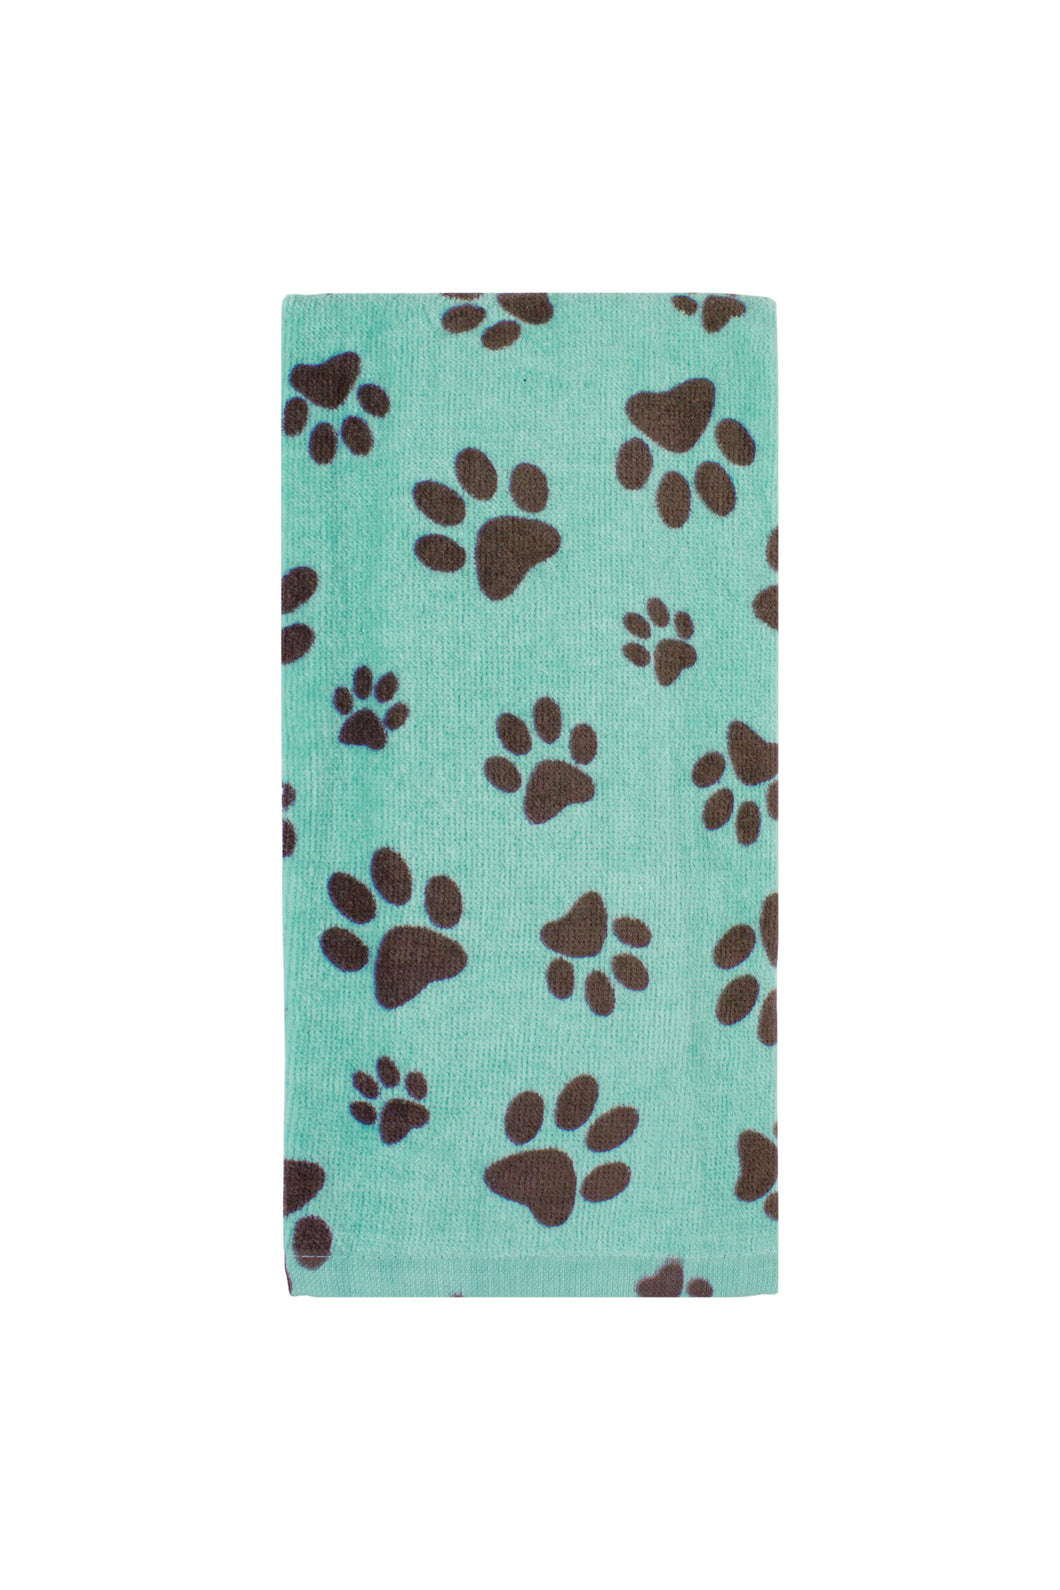 Paw Prints Kitchen Towel